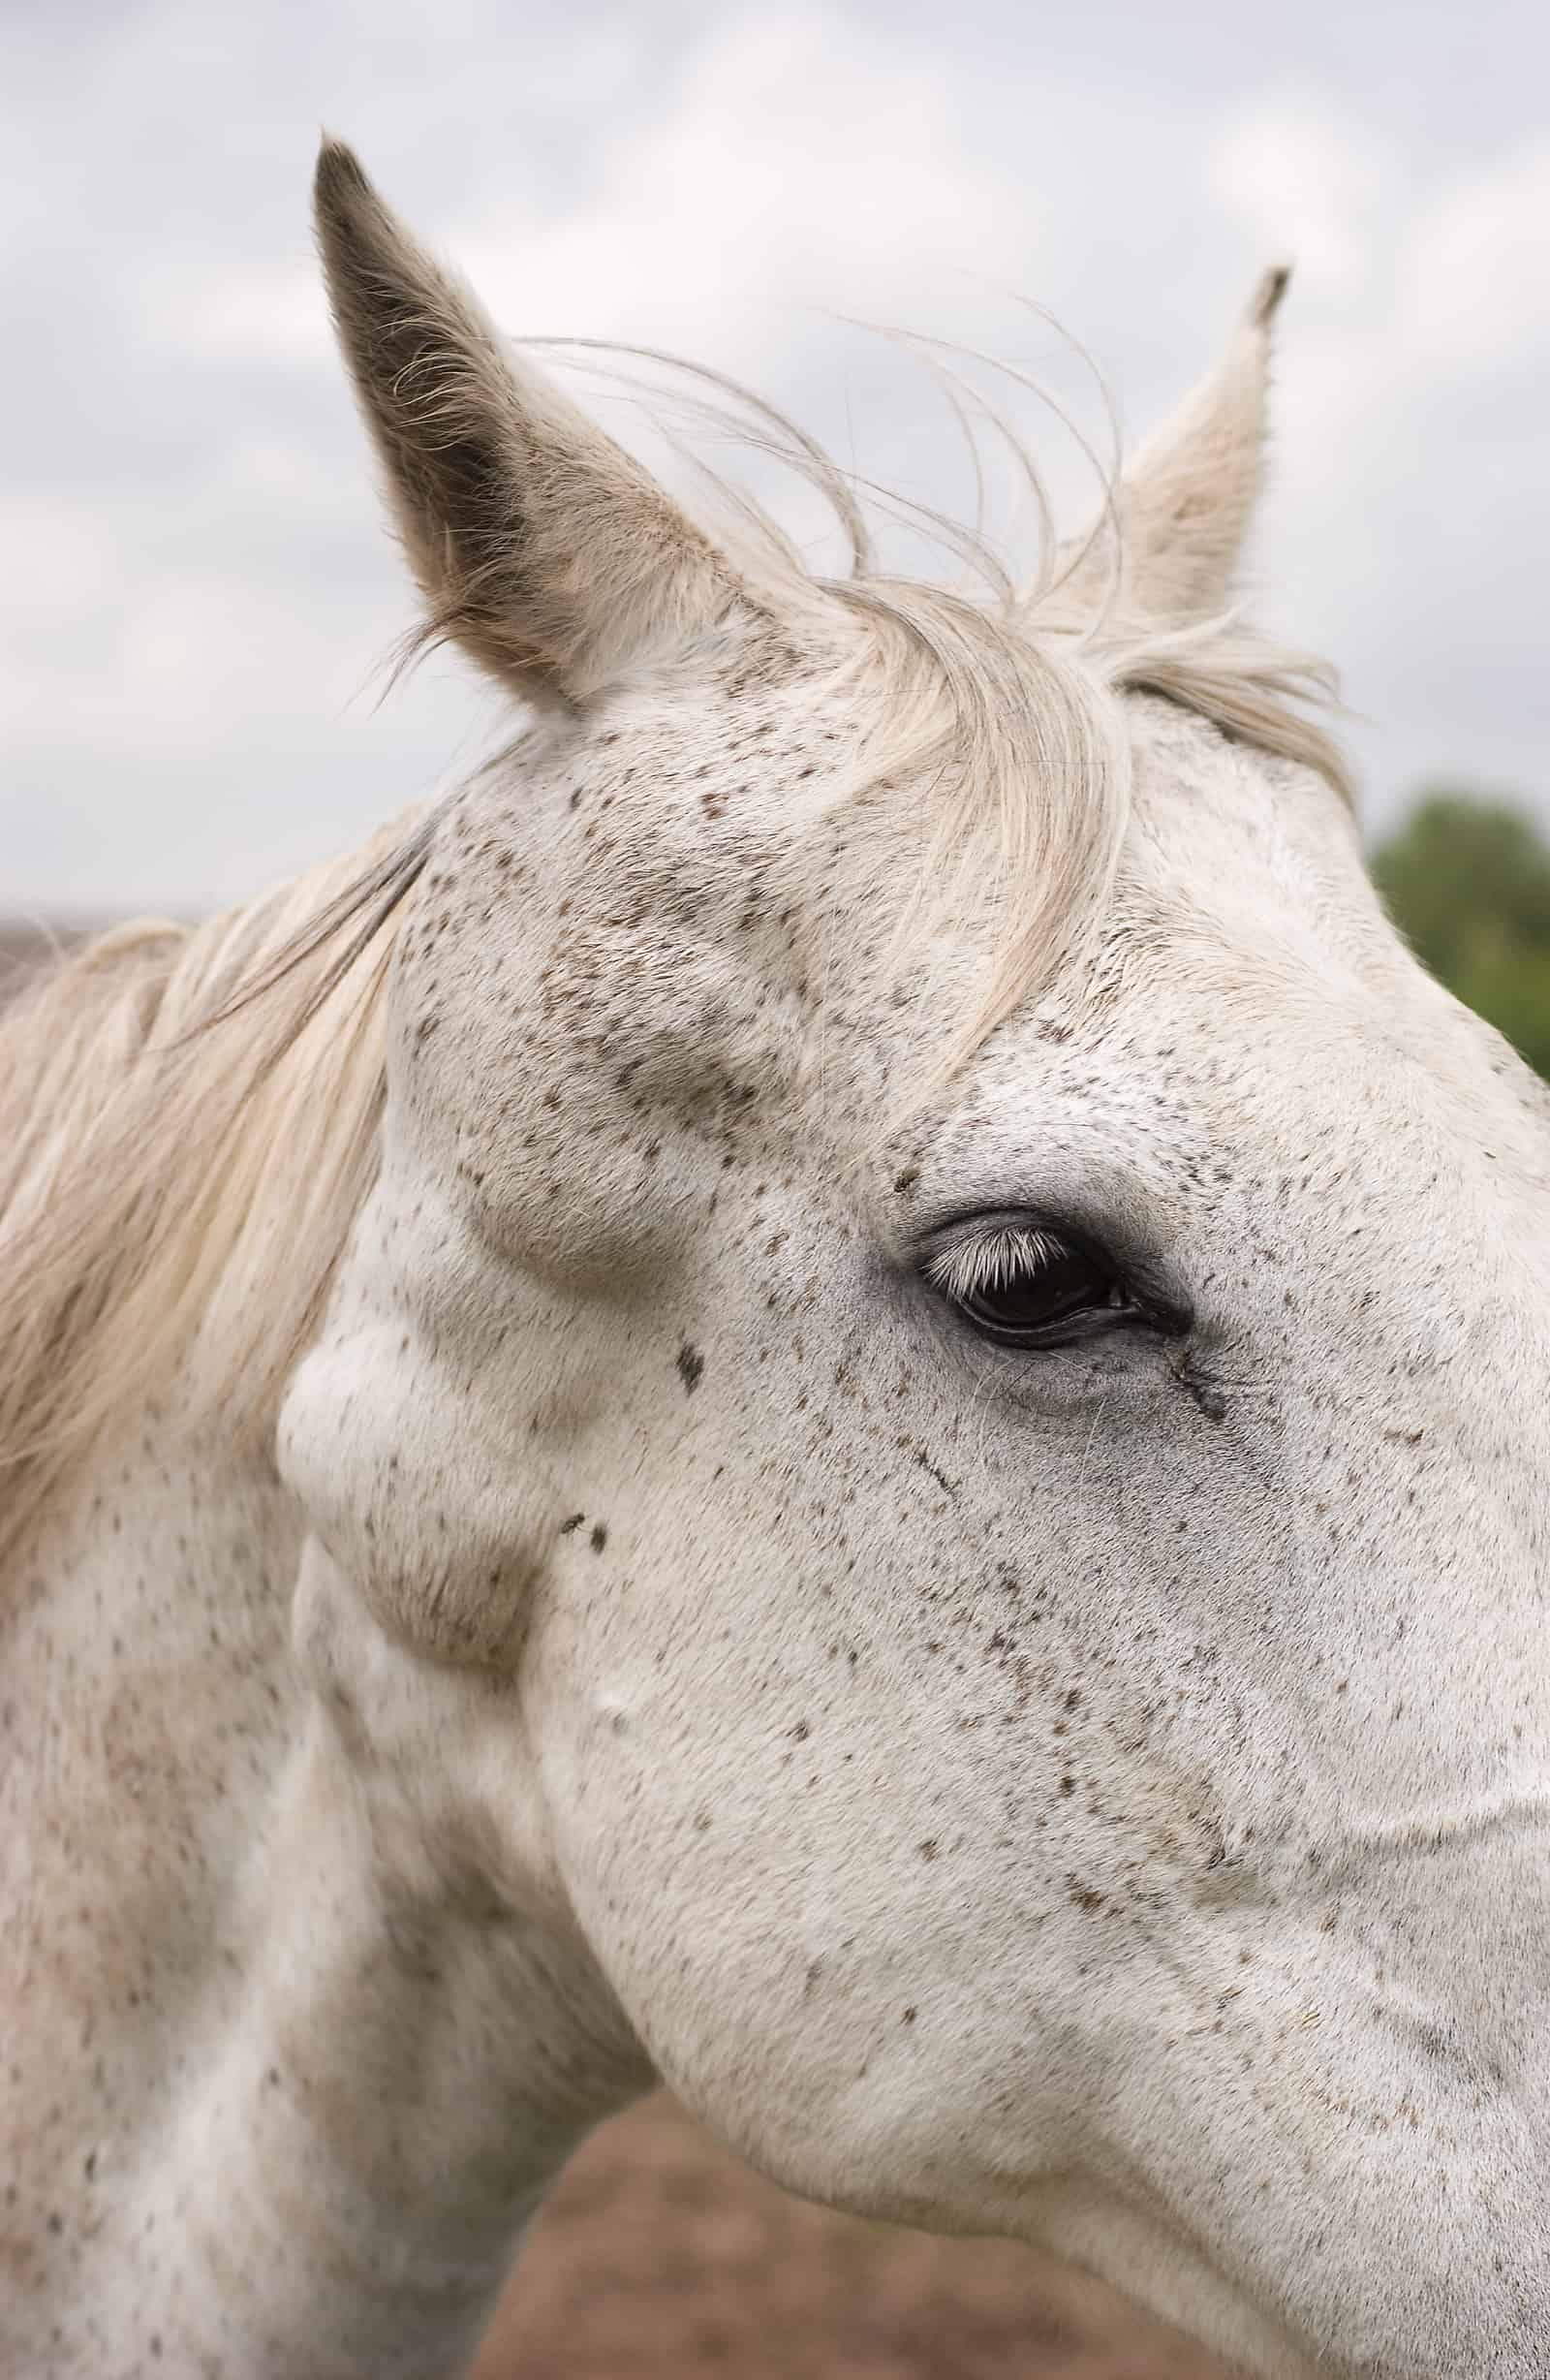 Canine Melanoma Vaccine Testing In Horses Underway